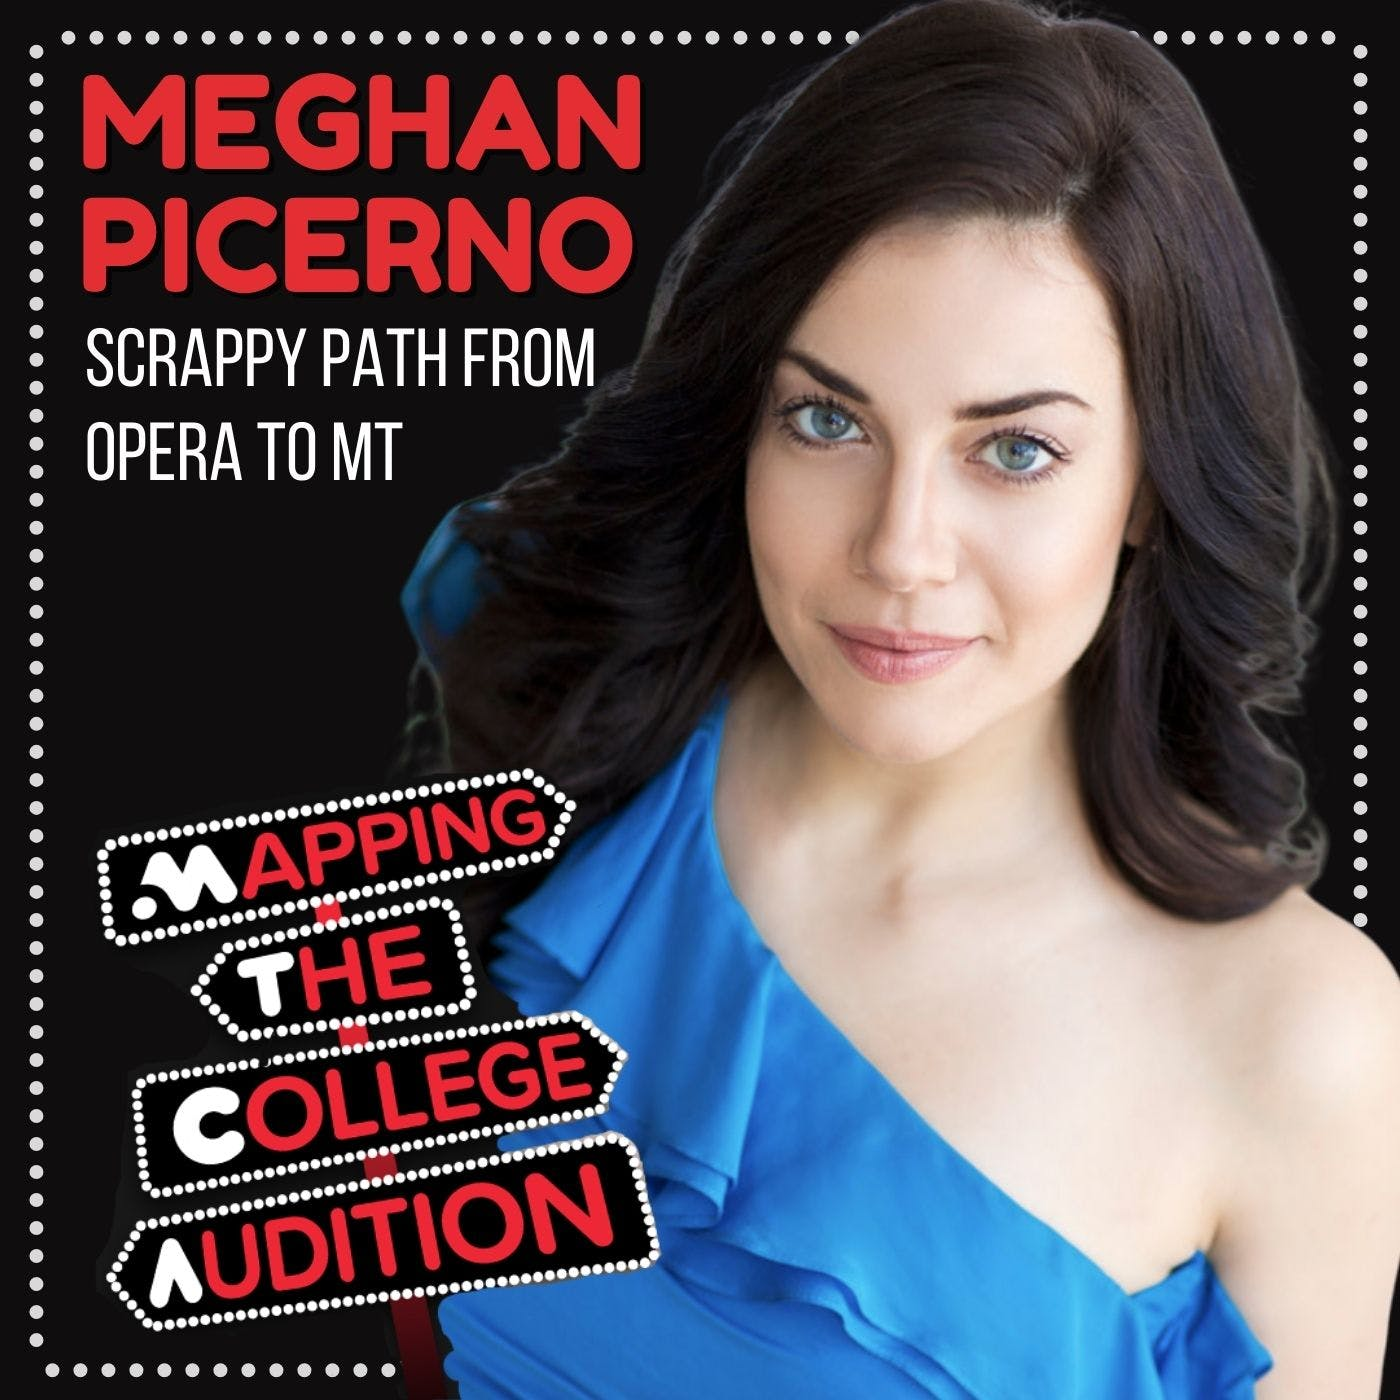 Ep. 21 (AE): Meghan Picerno (Phantom of the Opera) on the Scrappy Path from Opera to MT